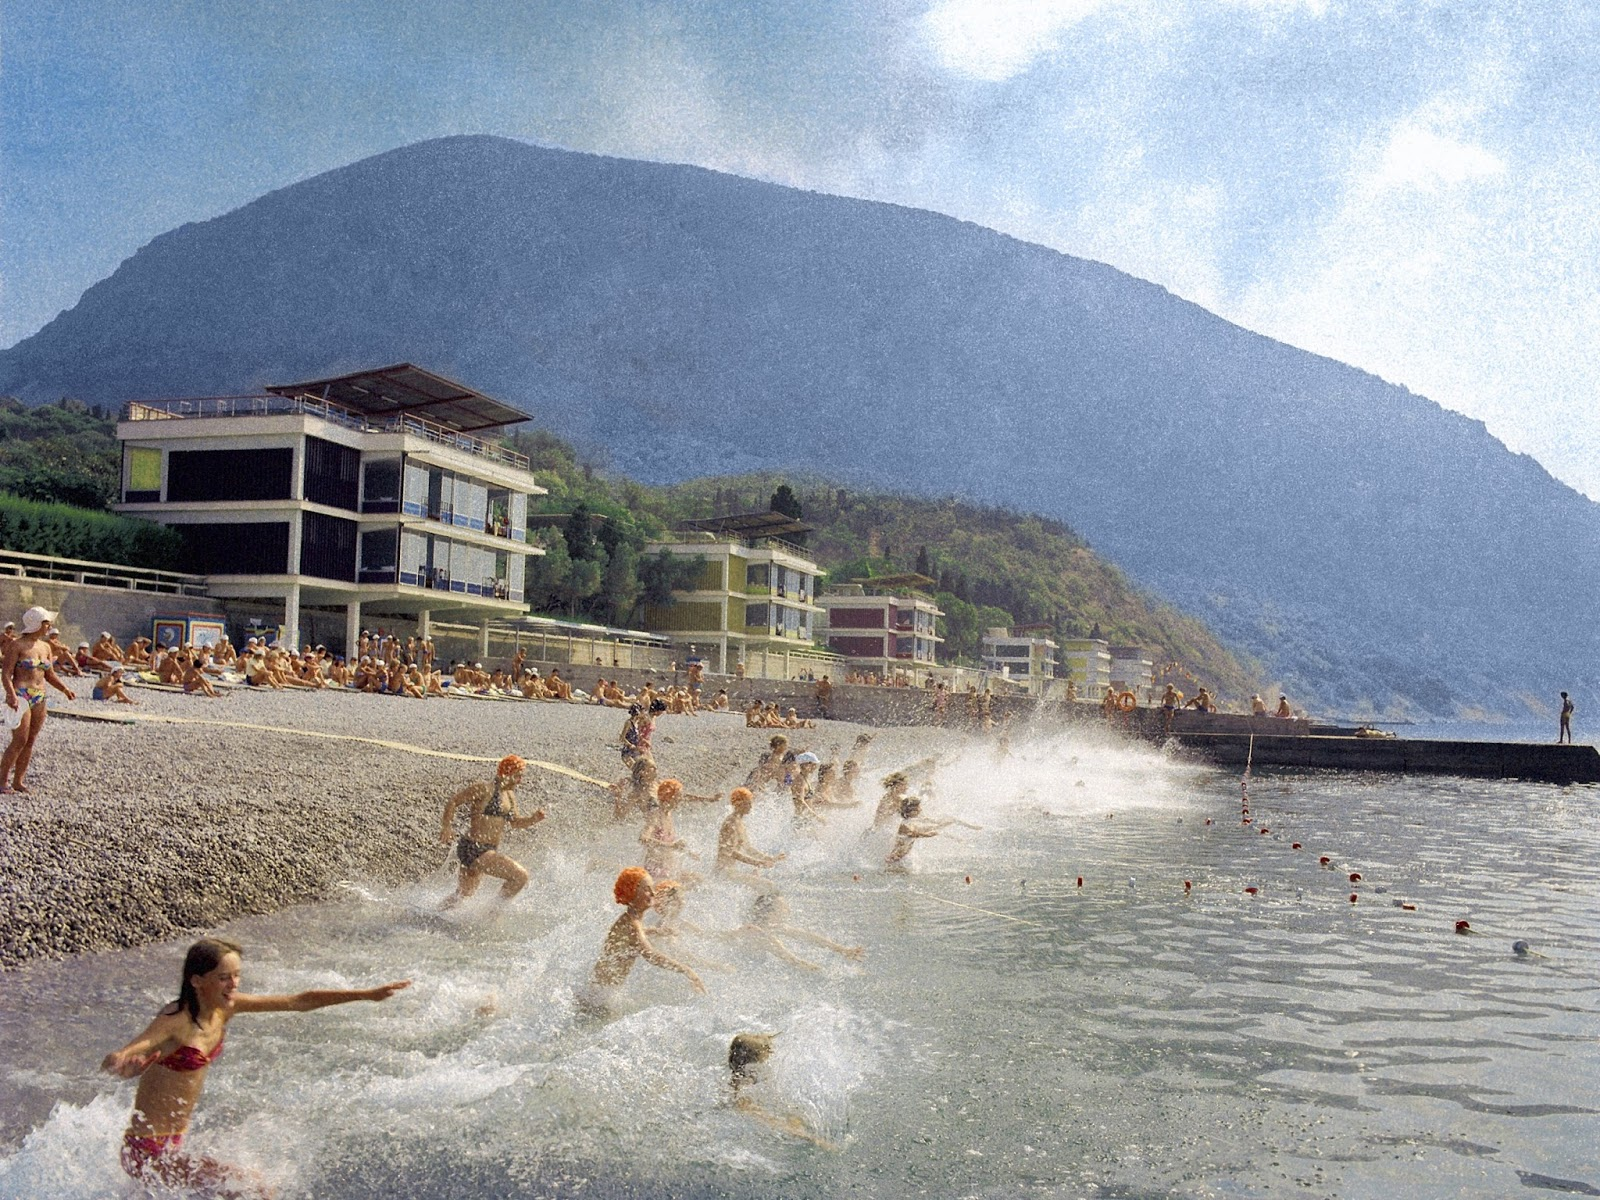 Artek Summer Camp in the 1980s Wonderful Pictures of the